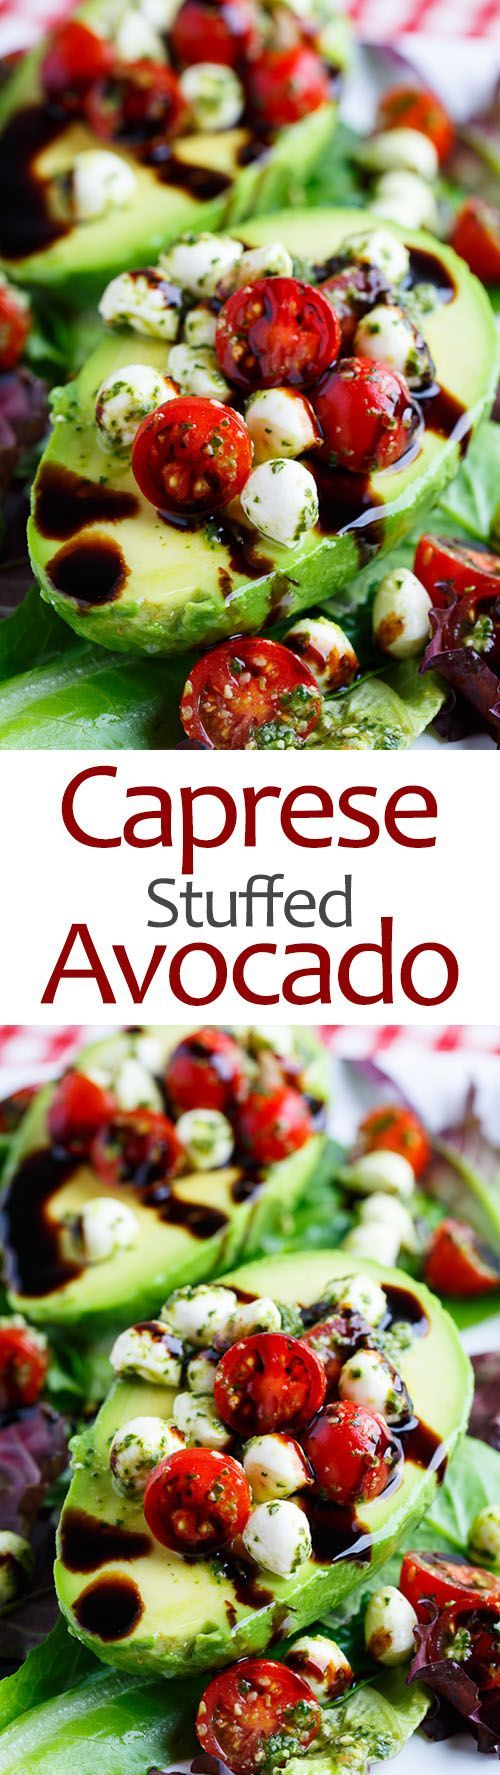 Caprese Stuffed Avocados | Closet Cooking